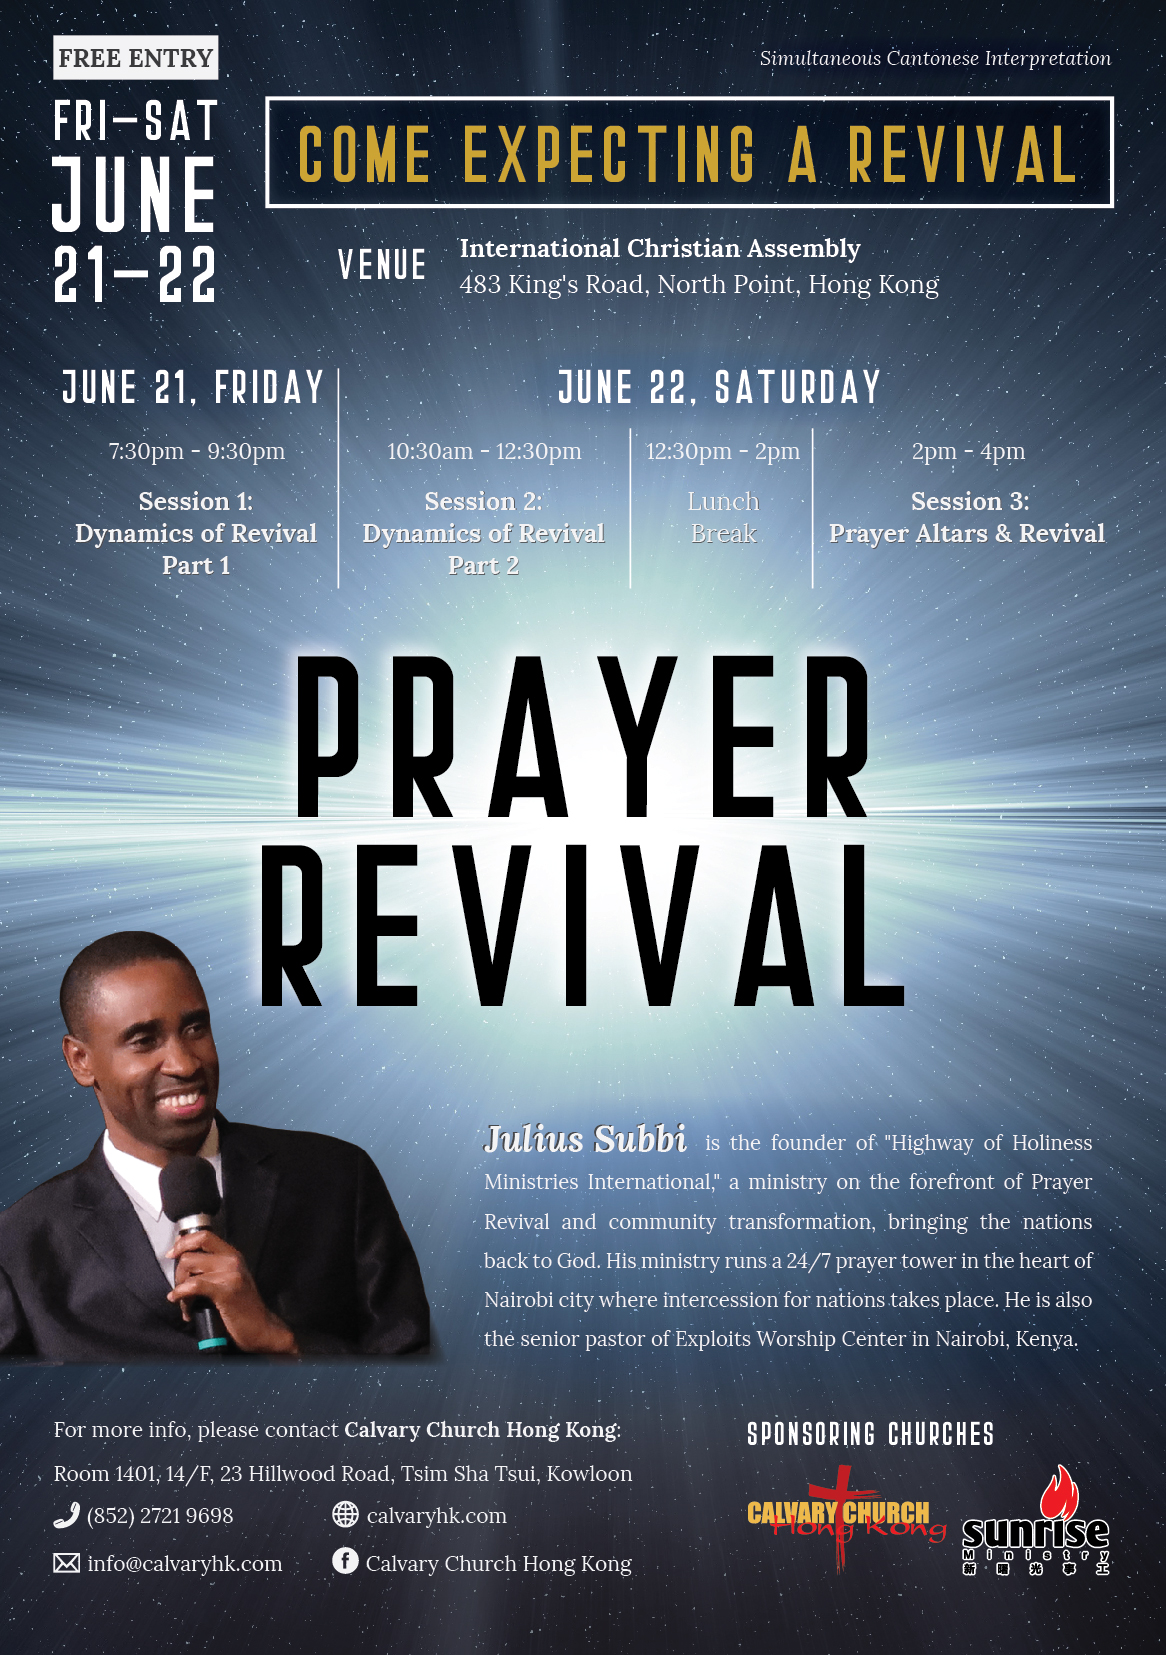 Prayer Revival Conference 禱告復興會 - Calvary Church Hong Kong